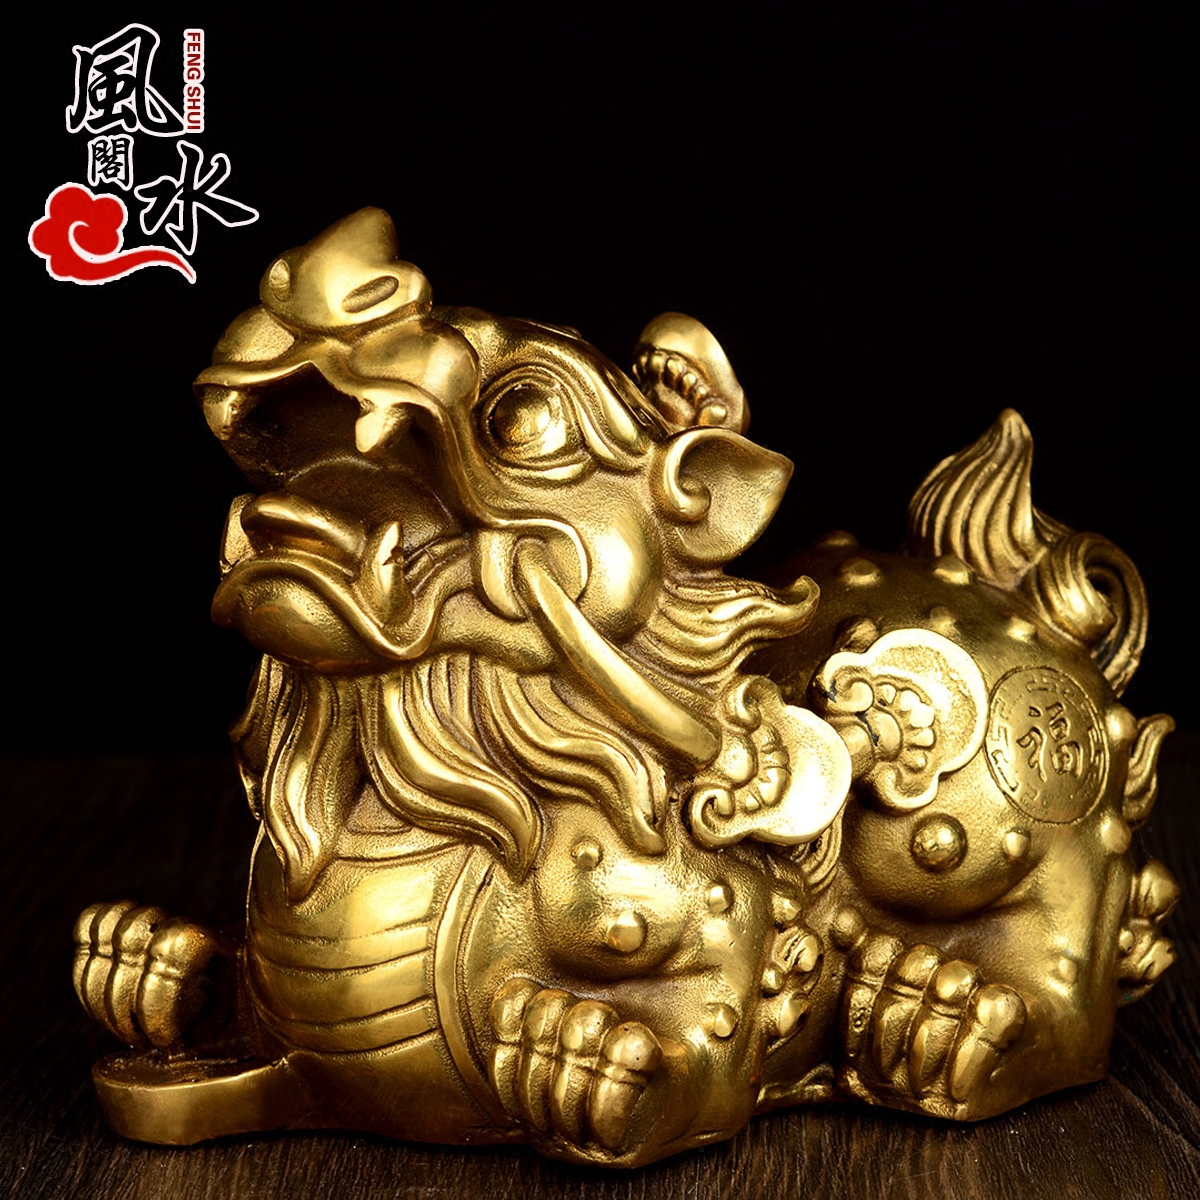 Feng shui court copper auspicious opening picchu brave ornaments lucky feng shui home furnishings ornaments business gifts